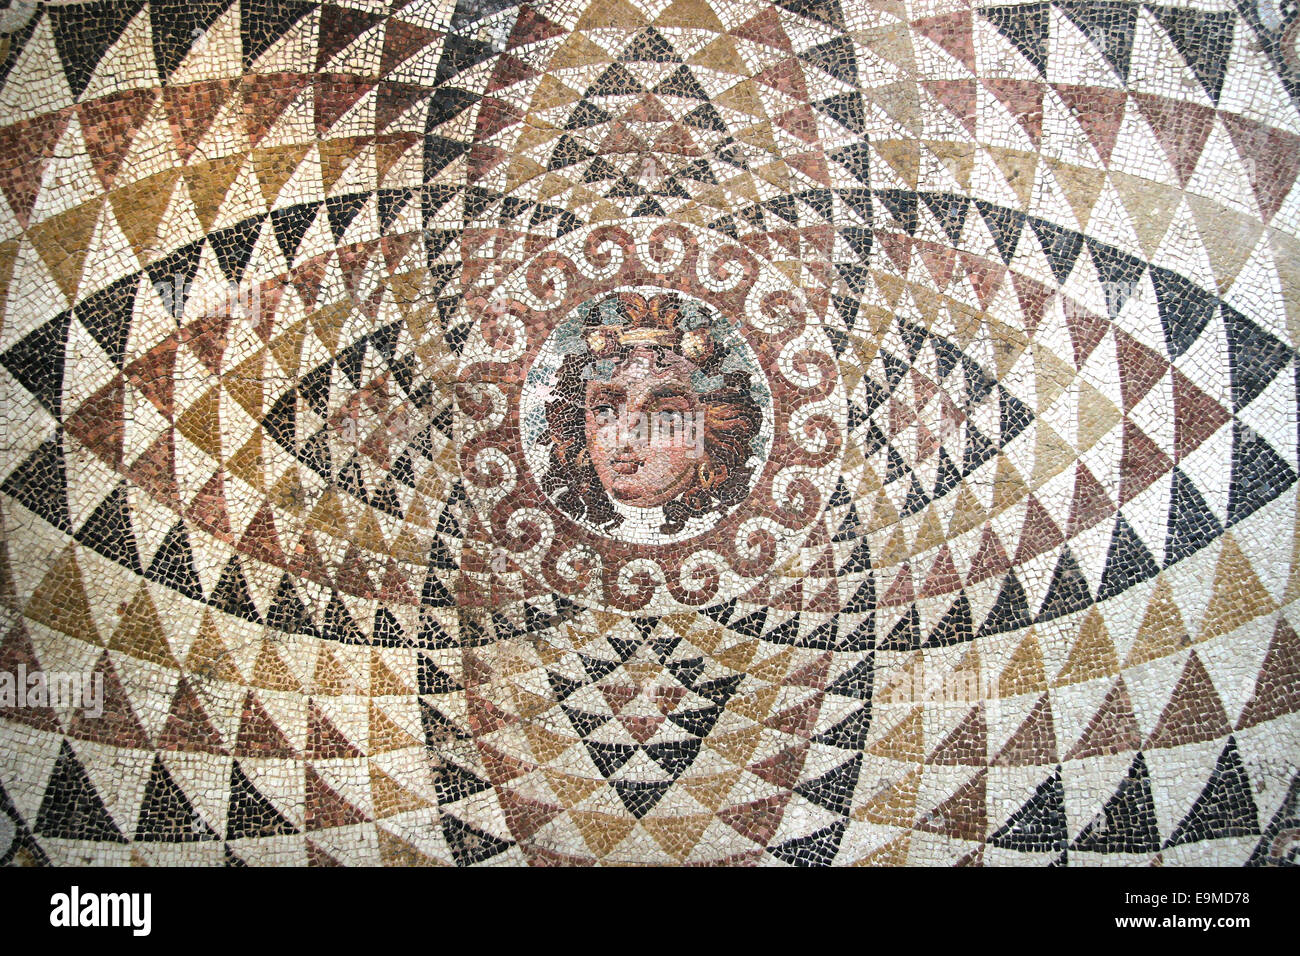 Mosaic of dionysos from the ruins of central panel from mosaic of dionysos from the ruins of central panel from tessellated floor of a roman villa second half 2nd century bc depict dailygadgetfo Images